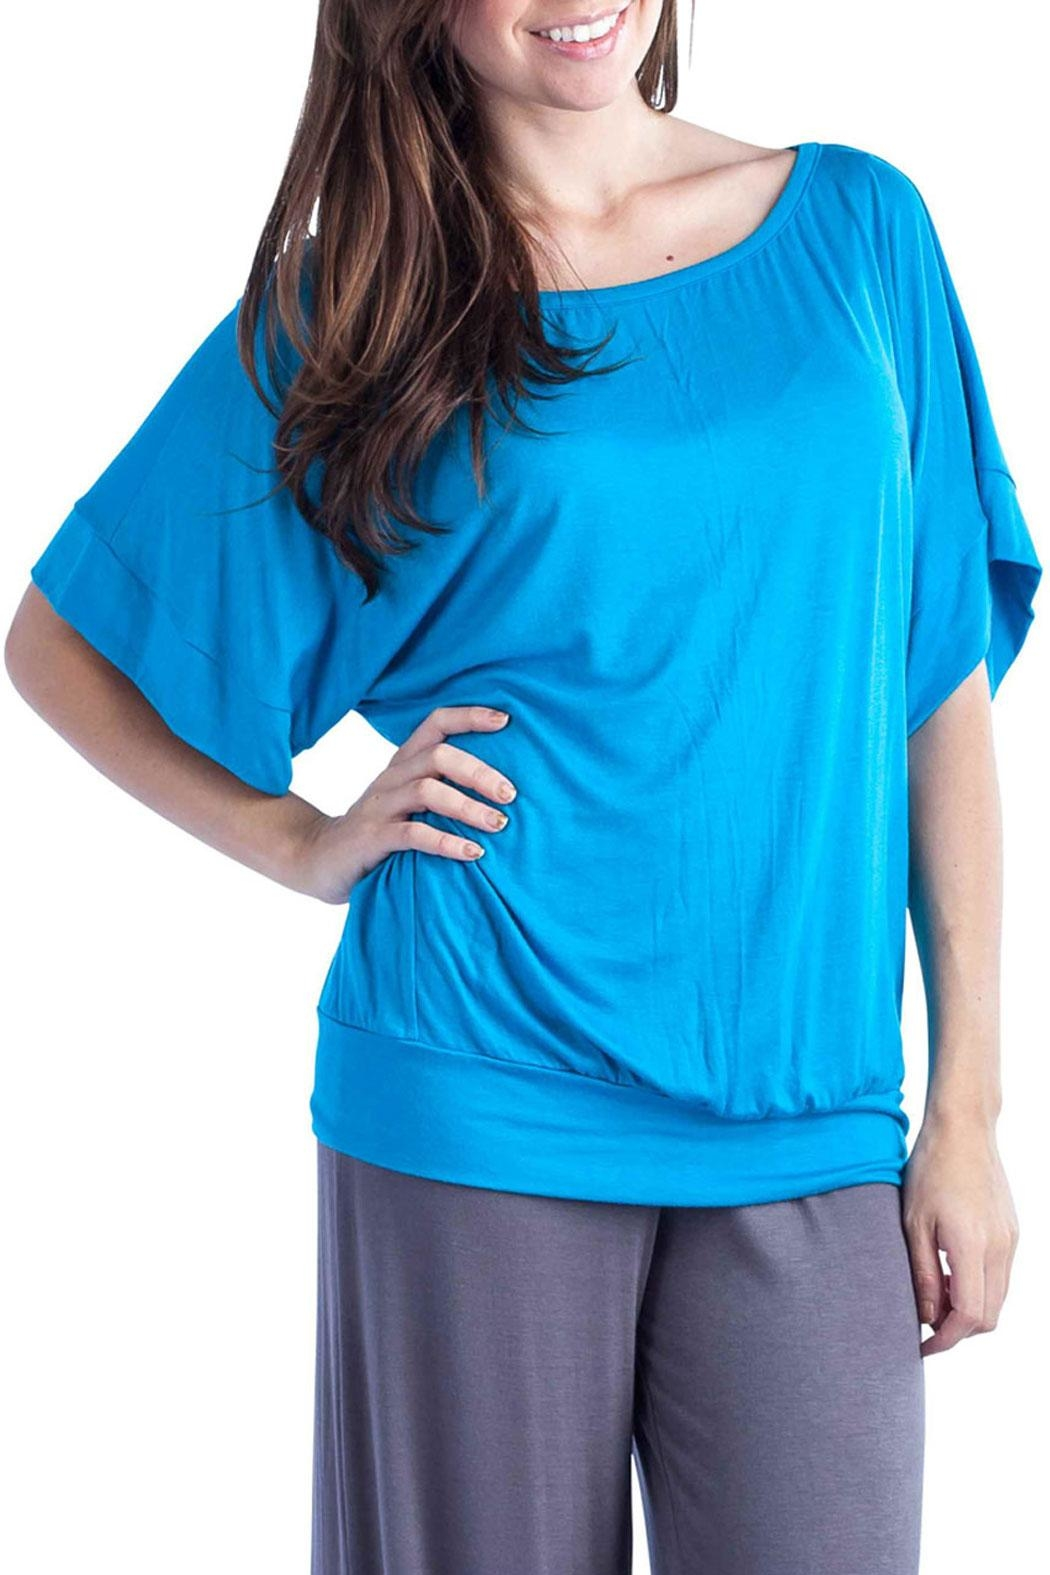 24/7 Comfort Apparel Banded Dolman Top - Front Cropped Image